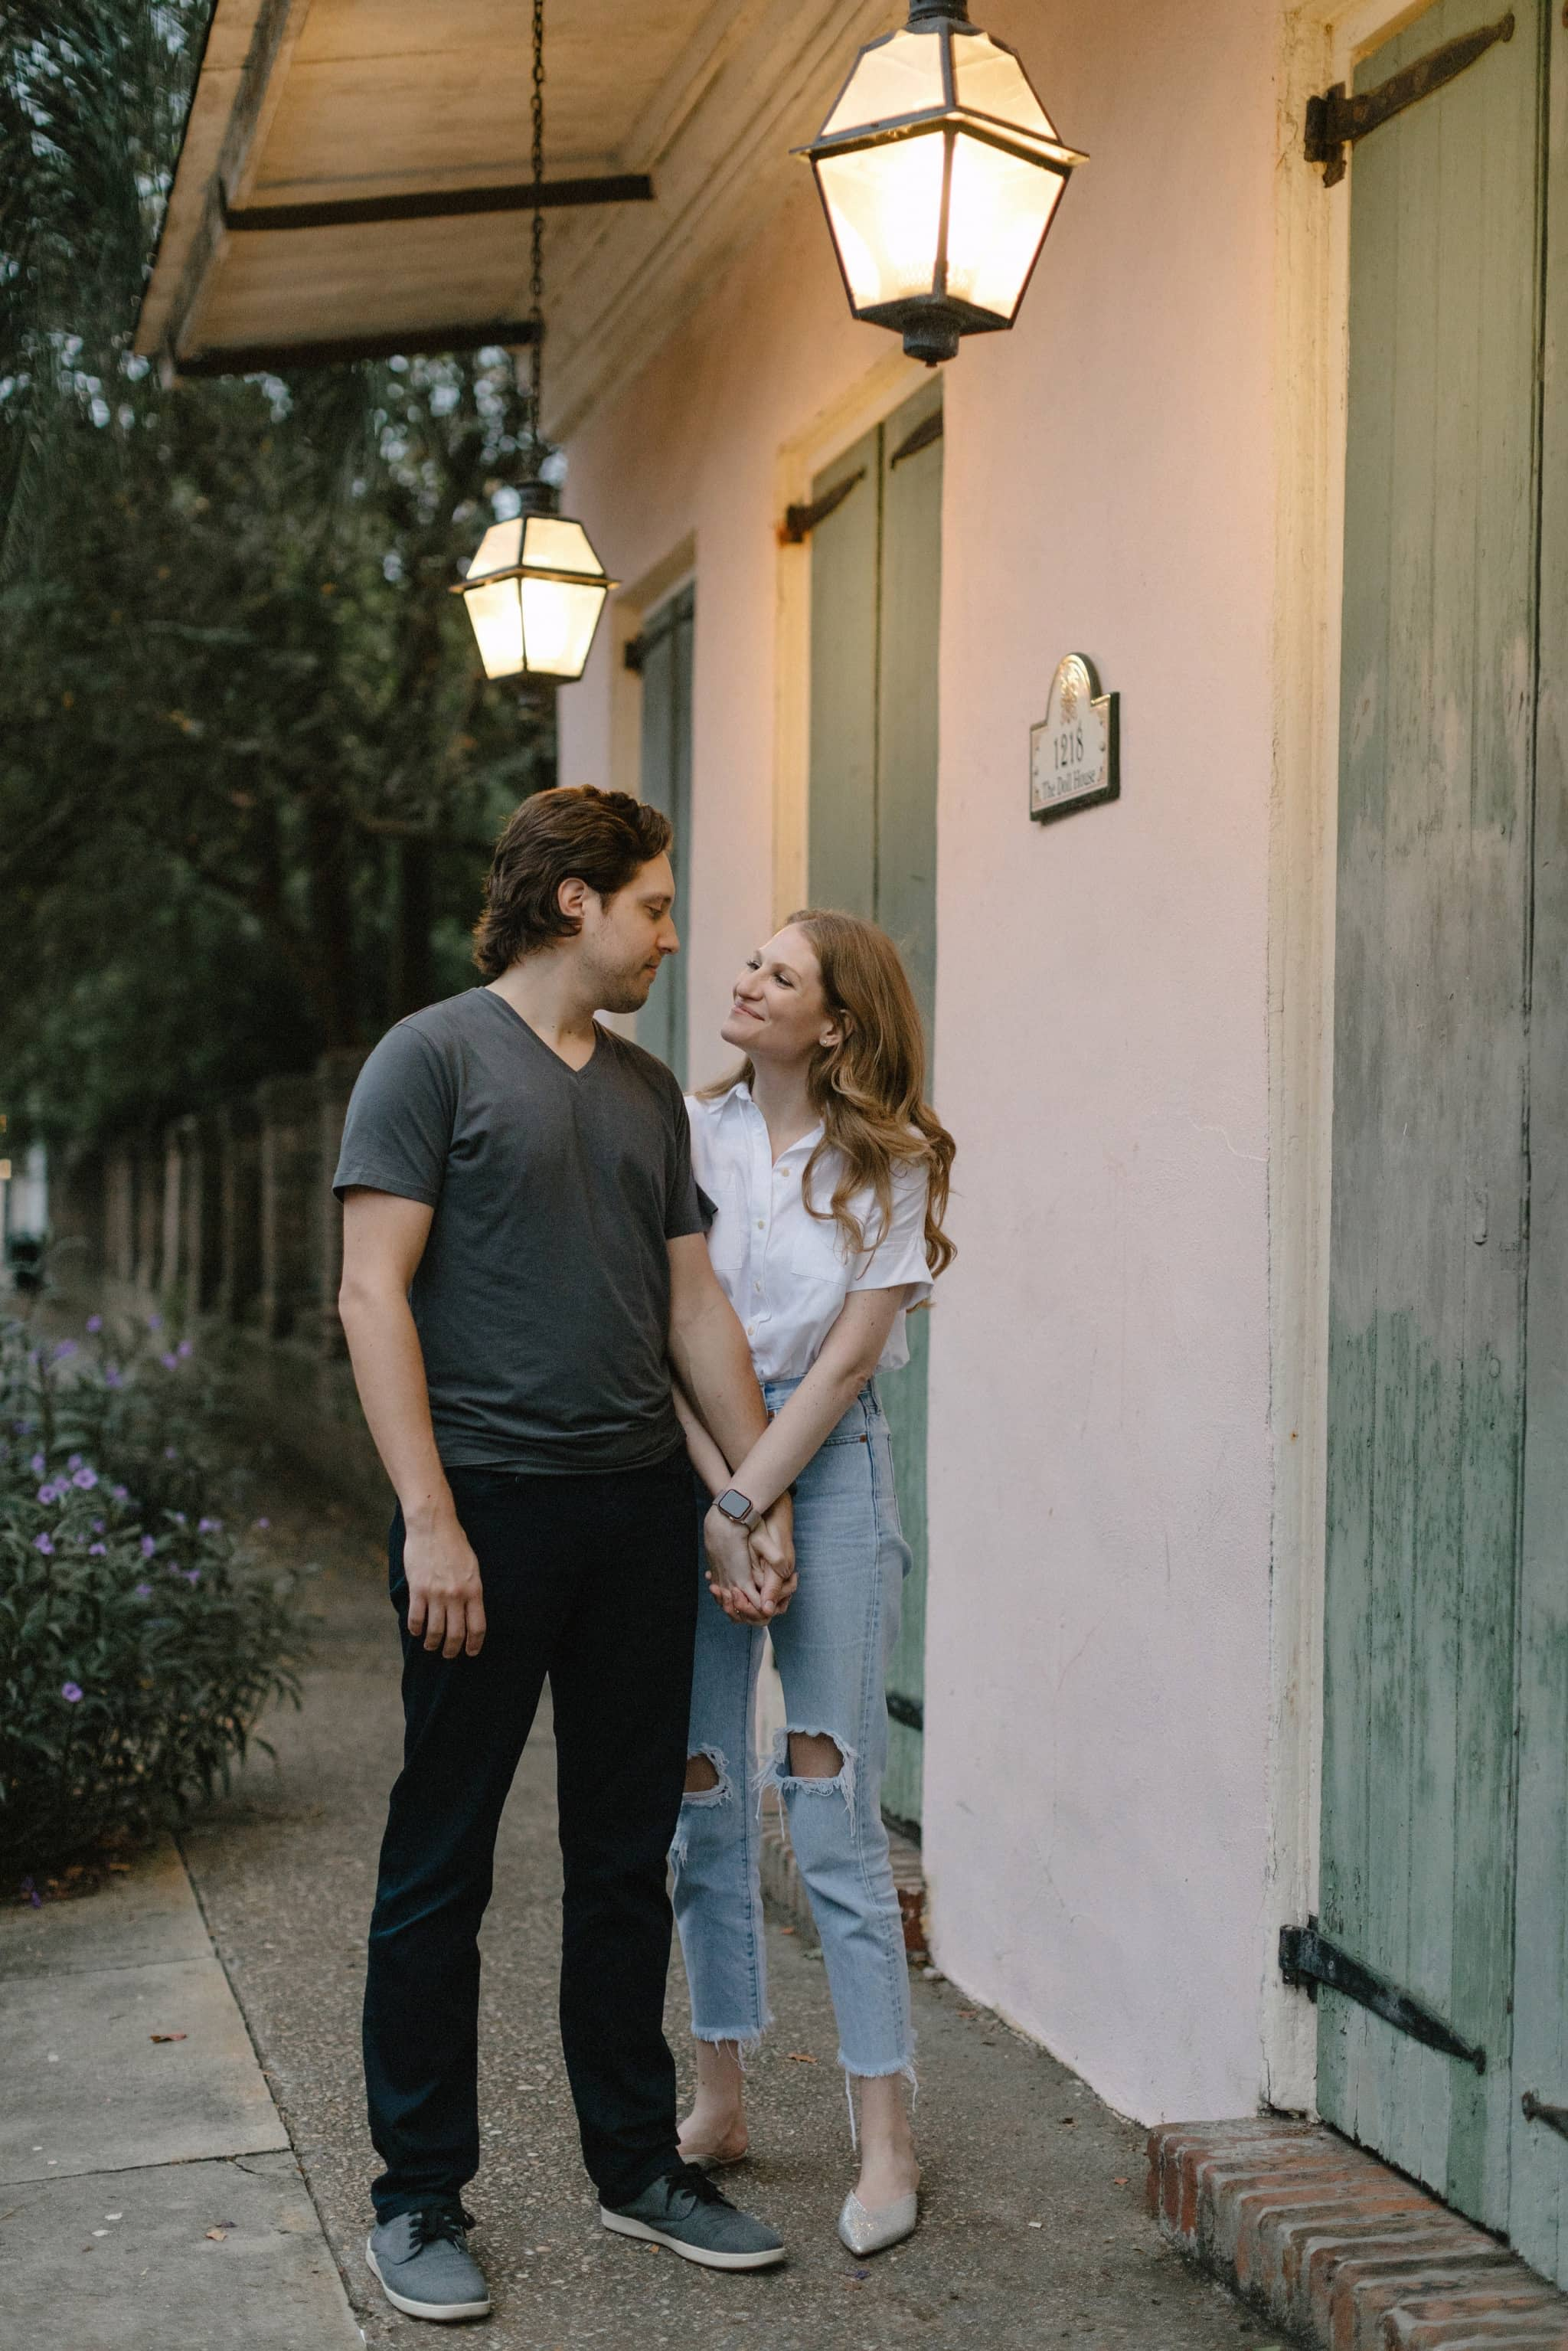 Cloudy Casual French Quarter Engagement Session